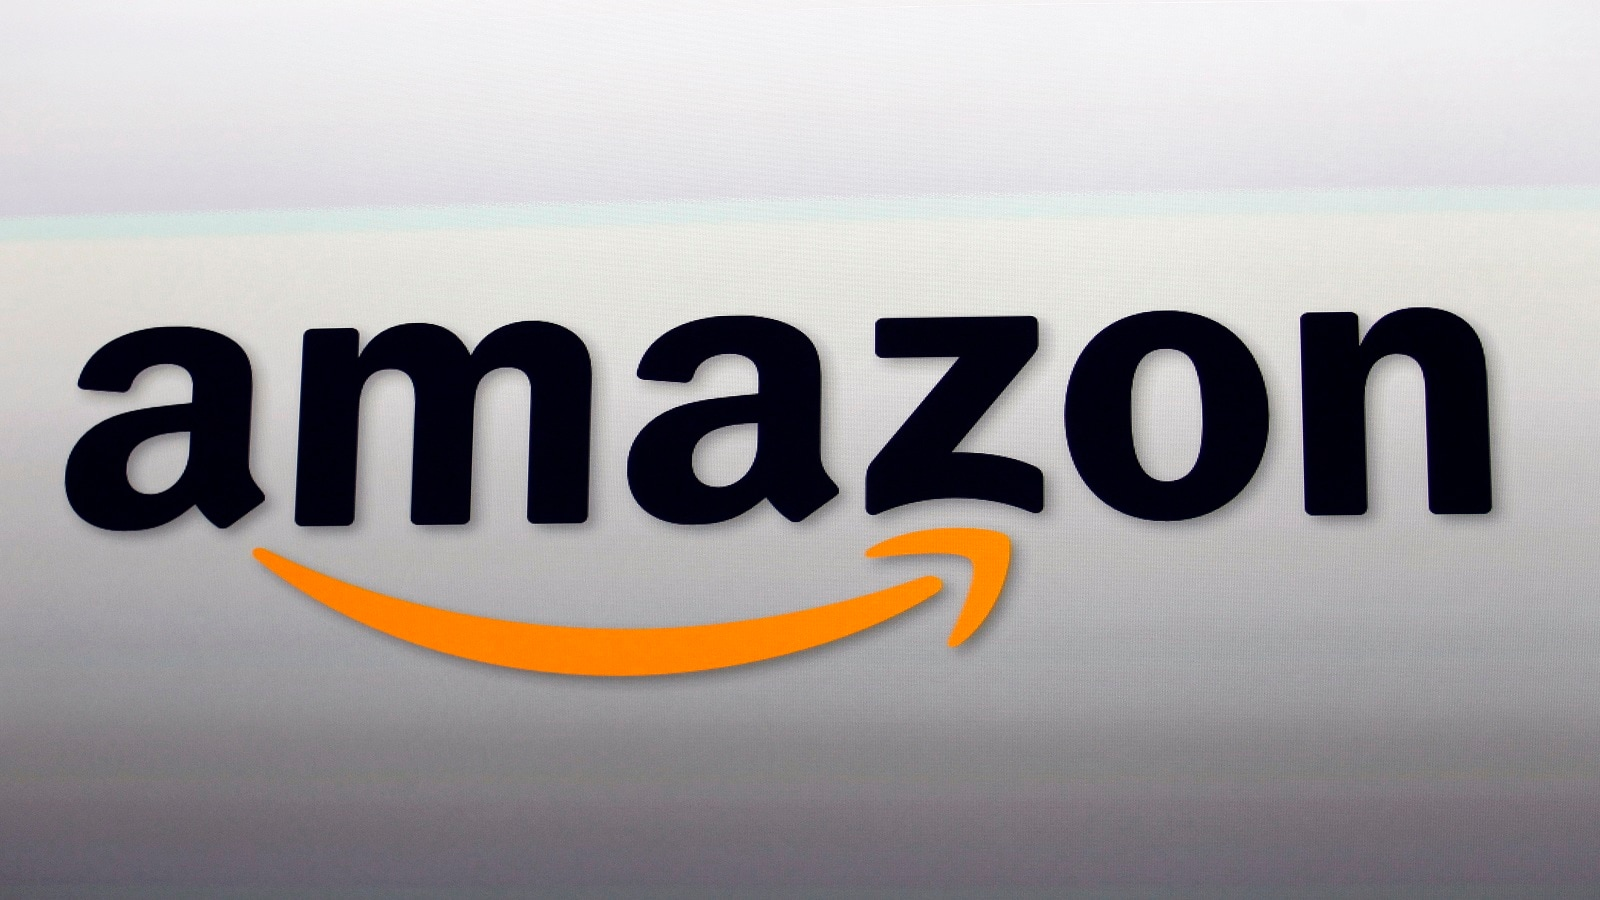 Coming second in the list is the American retail giant Amazon. Founded in 1994 by Jeff Bezos the company is the largest online retailer in the planet. The company has over 6.47 lakh employees. (Source: AP)